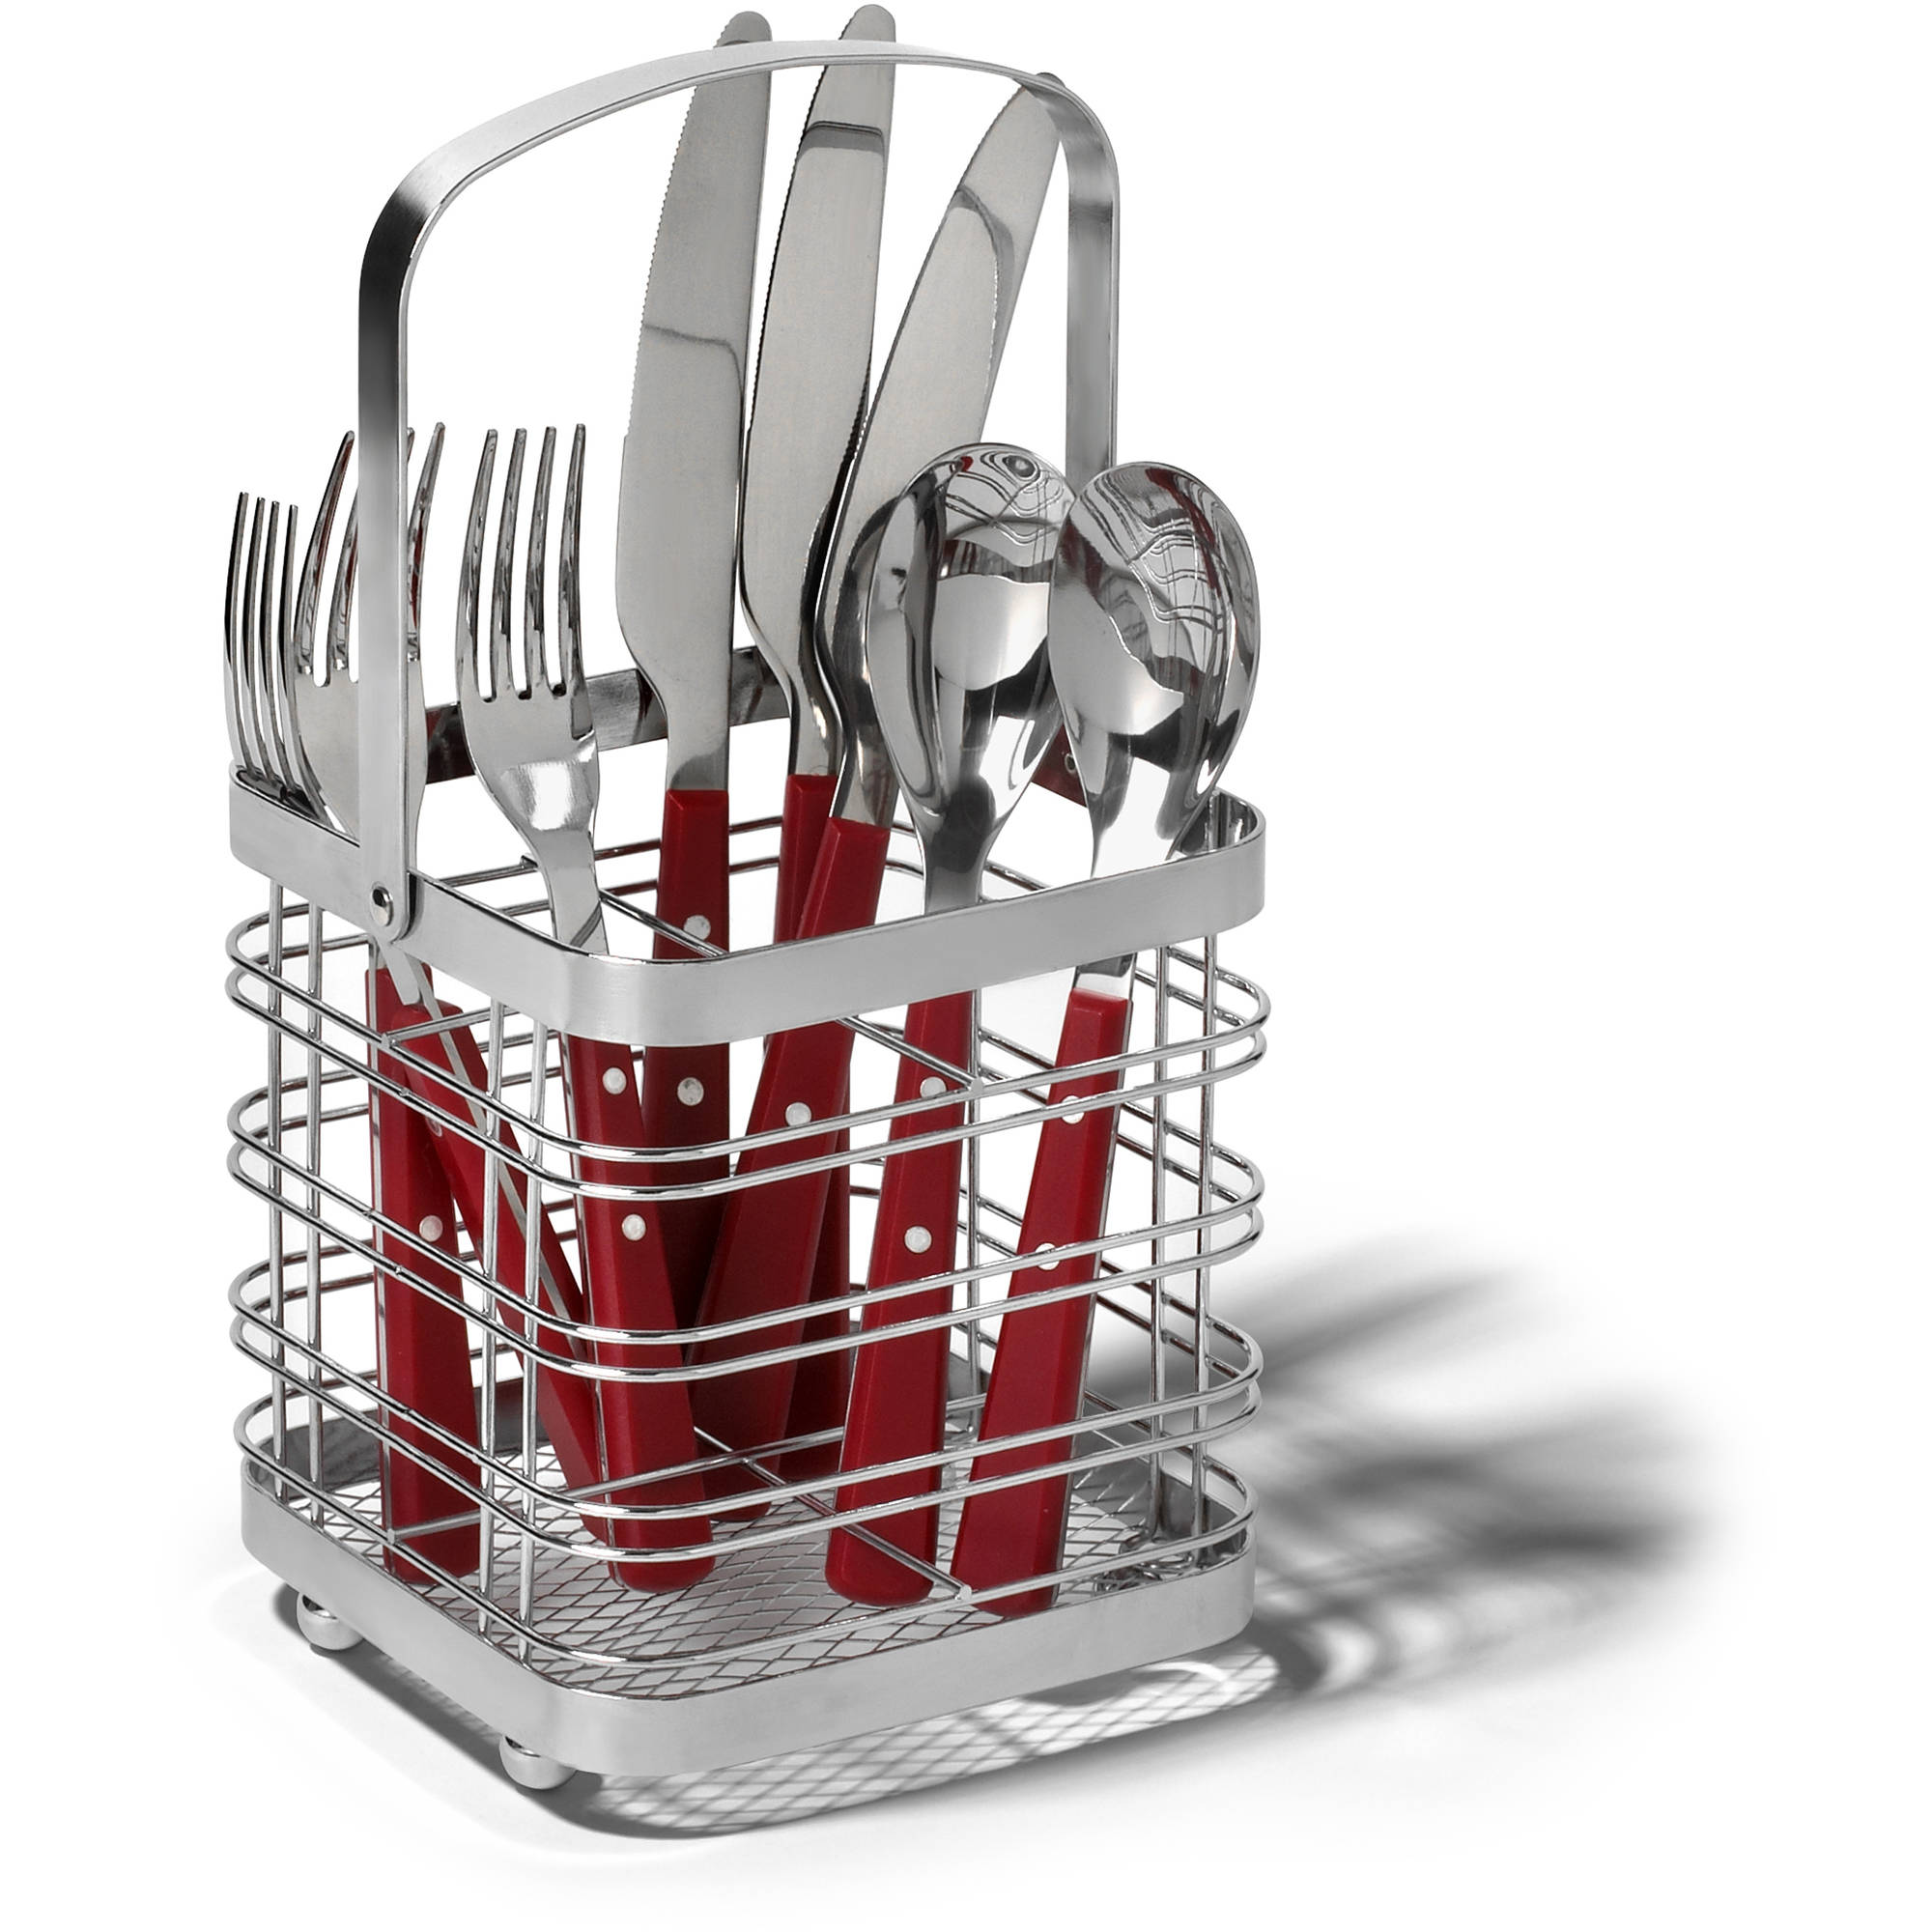 Spectrum Pantry Works Cube Silverware Caddy, Chrome